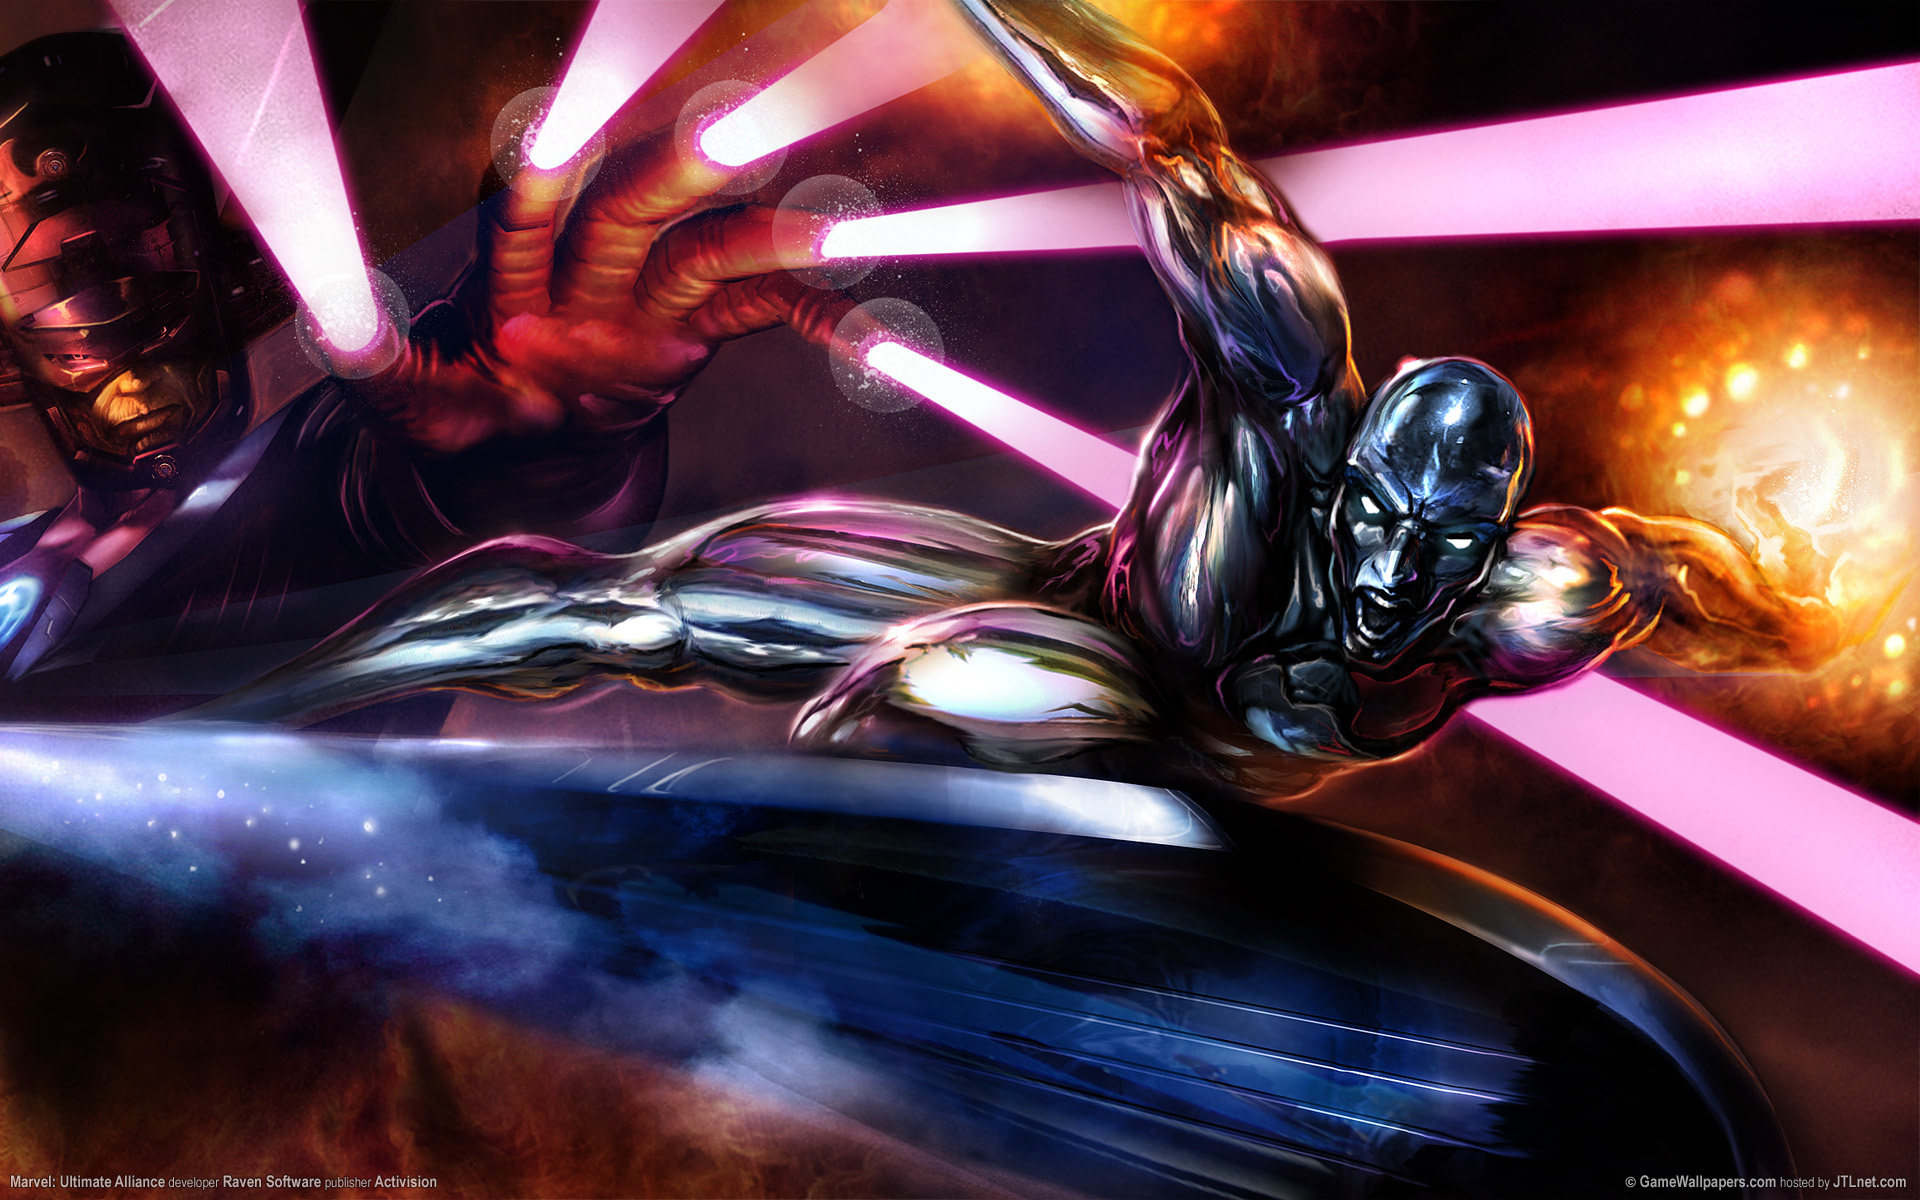 General 1920x1200 Silver Surfer Galactus Marvel Comics video games Ultimate Alliance Marvel: Ultimate Alliance (Game) video game art Raven Software Activision